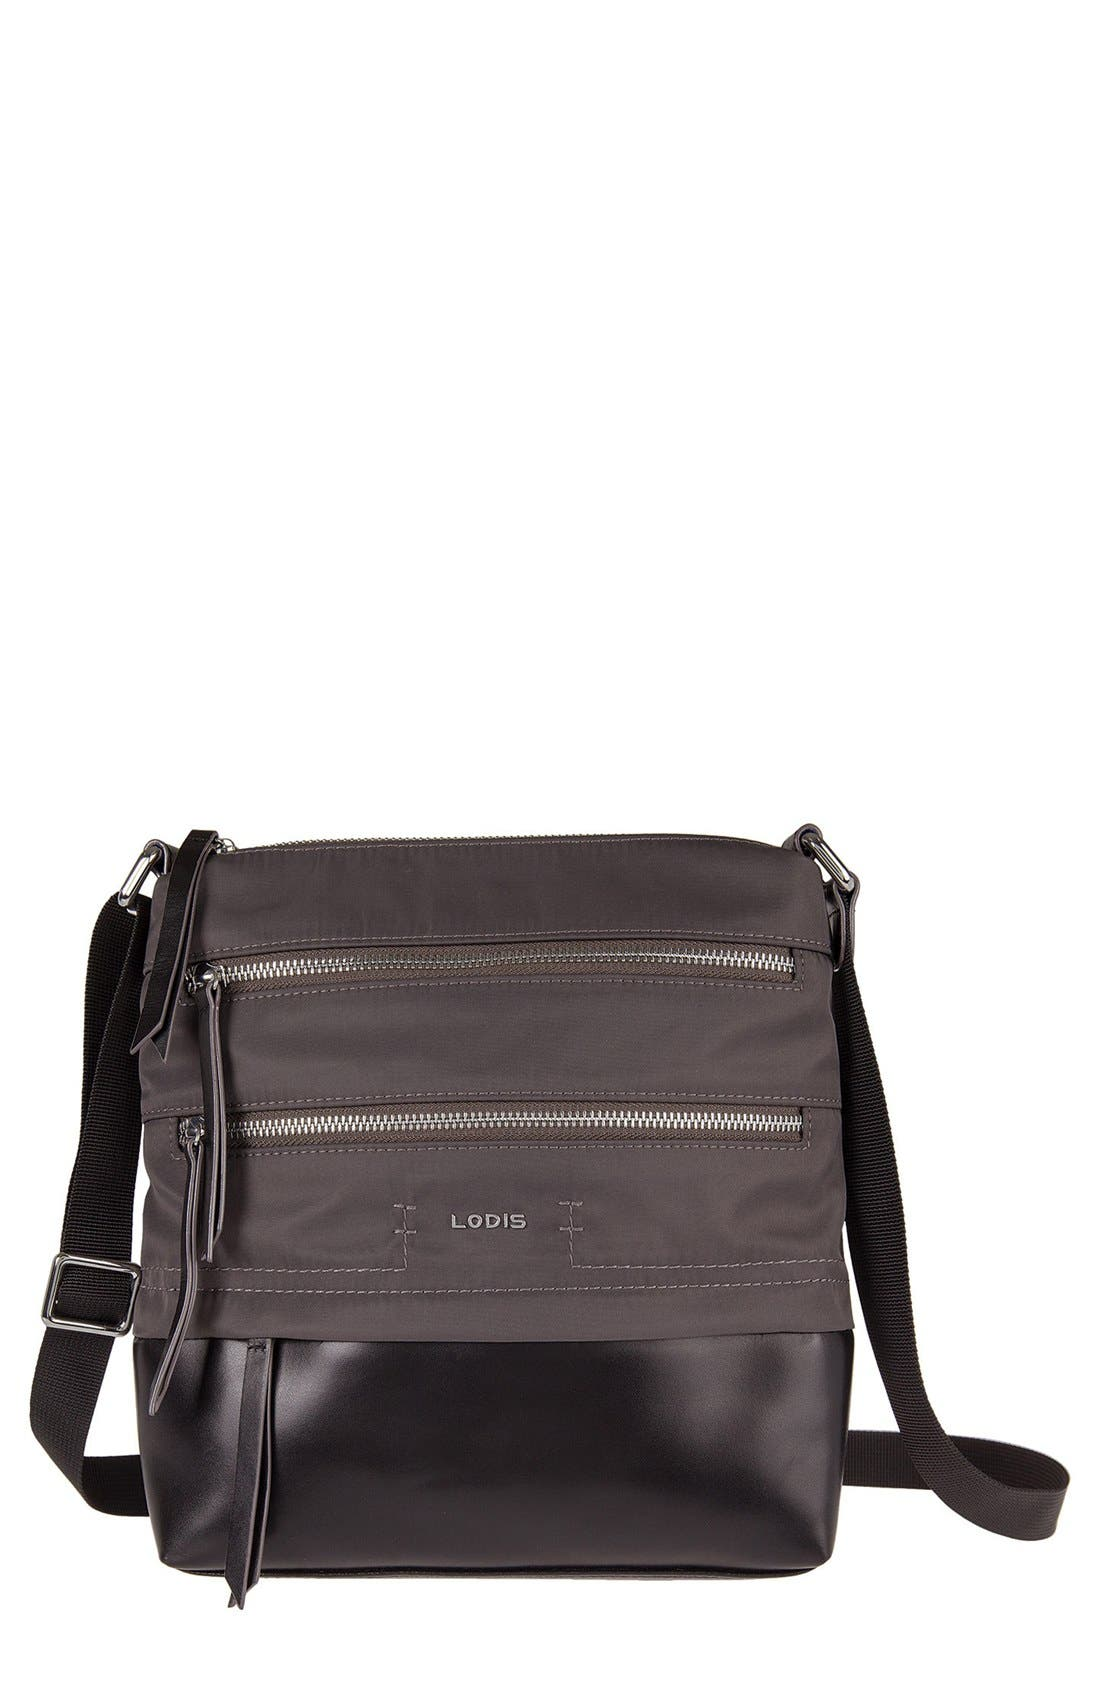 Main Image - LODIS Wanda RFID Nylon & Leather Crossbody Bag